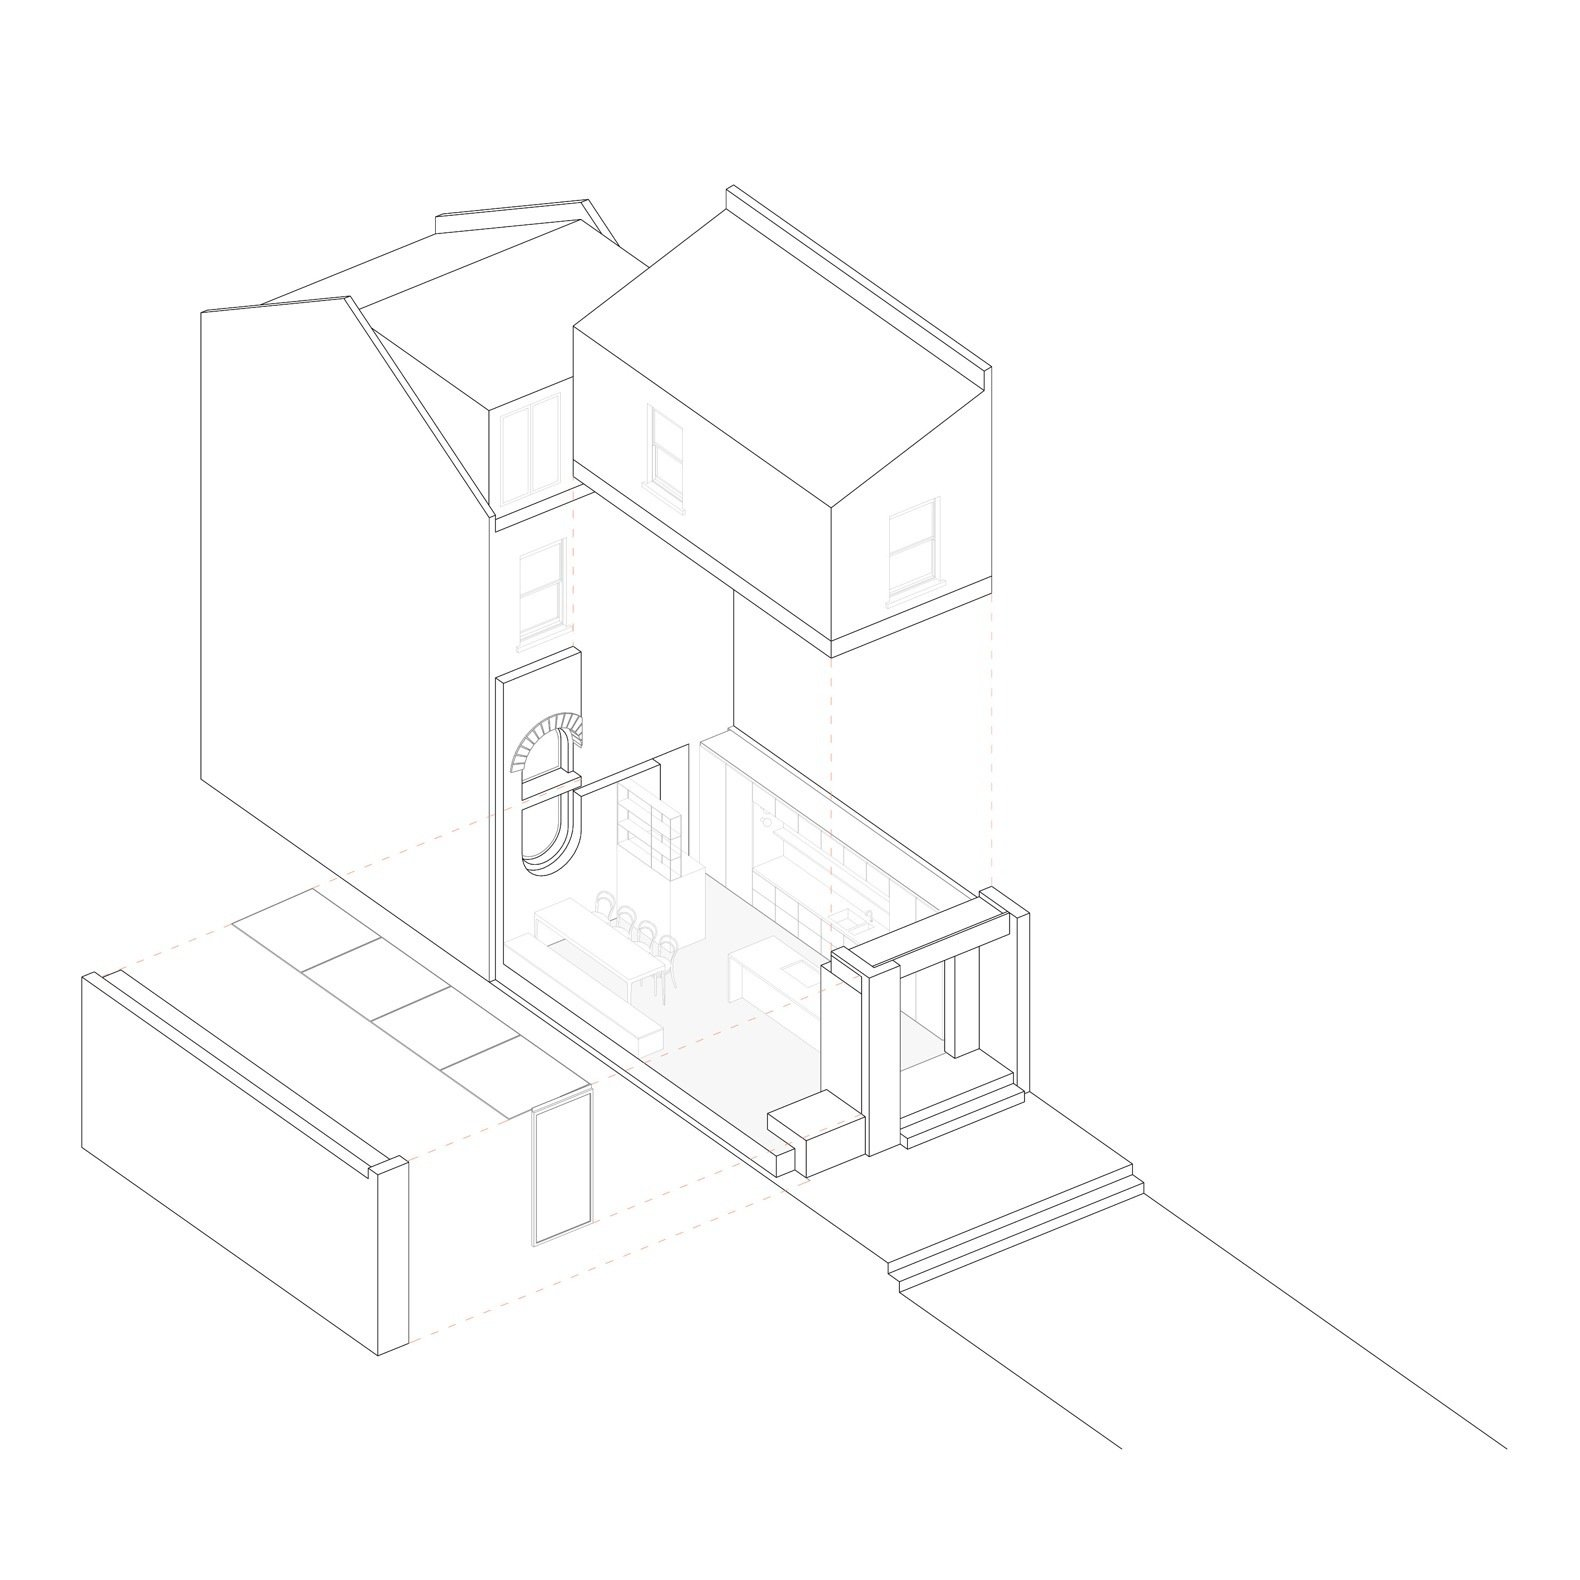 Glyn House exploded isometric diagram  Photo 19 of 19 in A London Victorian Gets a Dreamy Addition Anchored by a Terrazzo Island